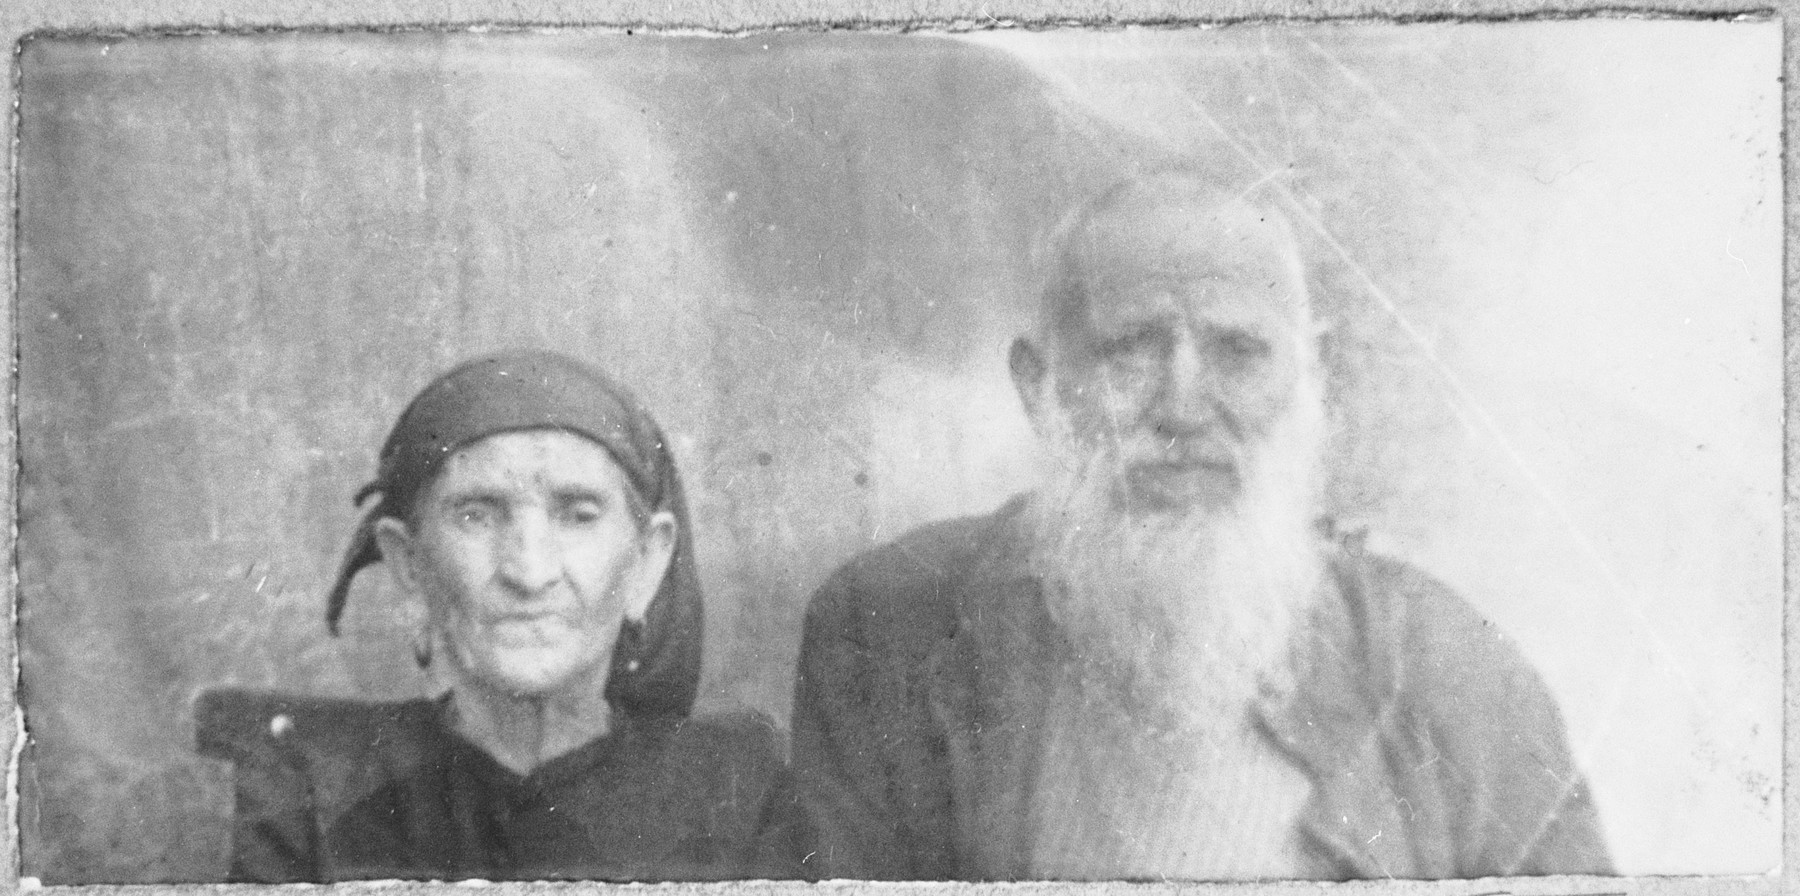 Portrait of Sava Koen and his wife, Ester.  Sava was a greengorcer.  They lived at Sremska 7 in Bitola.